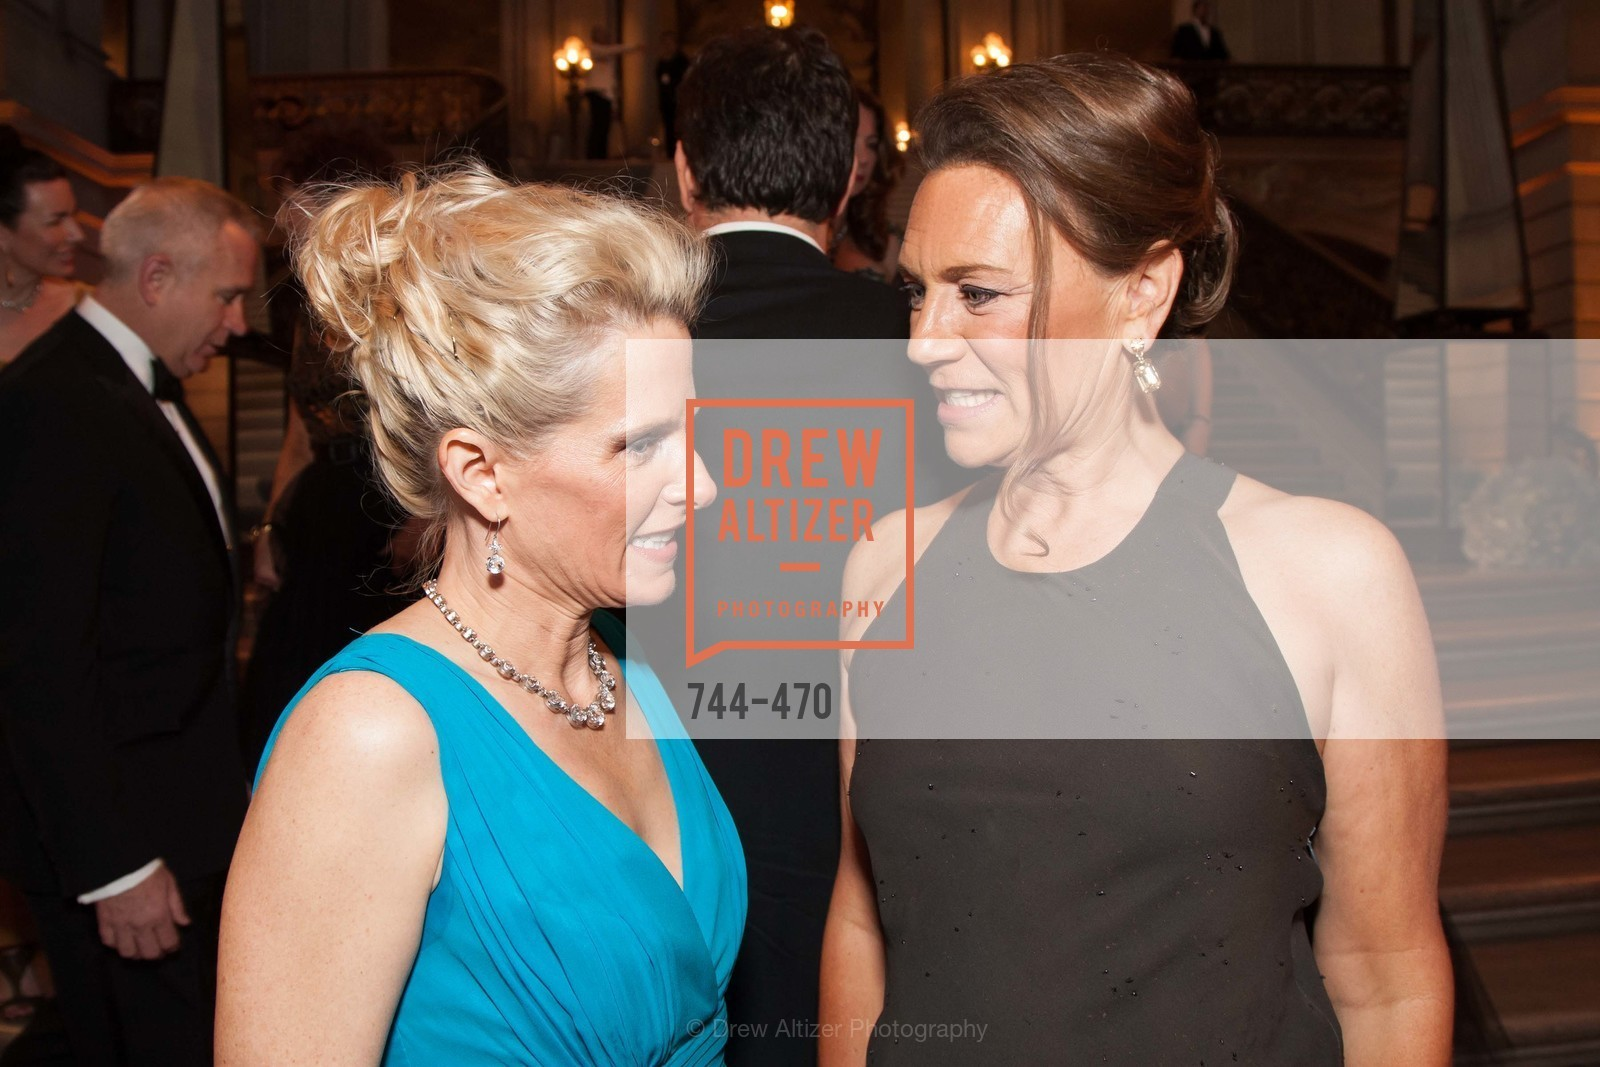 Marie Hurabiell, Carla Wytmar, SAN FRANCISCO BALLET Opening Night Gala: PHENOMENAL - Arrivals, US. SF City Hall, January 22nd, 2014,Drew Altizer, Drew Altizer Photography, full-service agency, private events, San Francisco photographer, photographer california